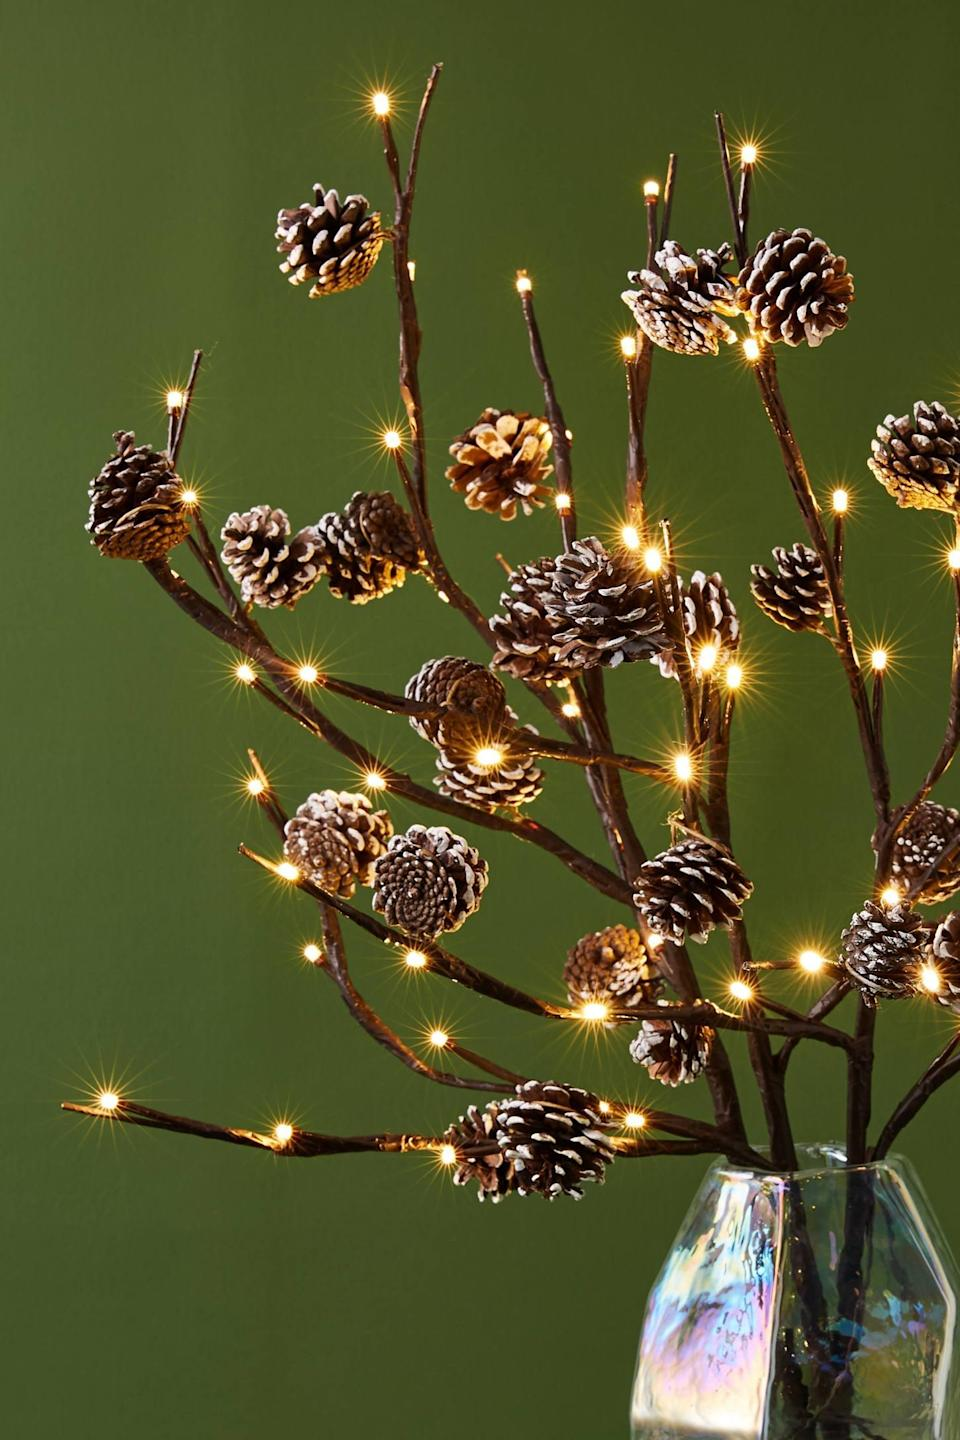 """<p>Accent your holiday tree with these <a href=""""https://www.popsugar.com/buy/Twinkling-Pinecone-Branches-490500?p_name=Twinkling%20Pinecone%20Branches&retailer=anthropologie.com&pid=490500&price=48&evar1=casa%3Aus&evar9=46615300&evar98=https%3A%2F%2Fwww.popsugar.com%2Fhome%2Fphoto-gallery%2F46615300%2Fimage%2F46615370%2FTwinkling-Pinecone-Branches&list1=shopping%2Canthropologie%2Choliday%2Cchristmas%2Cchristmas%20decorations%2Choliday%20decor%2Chome%20shopping&prop13=mobile&pdata=1"""" rel=""""nofollow noopener"""" class=""""link rapid-noclick-resp"""" target=""""_blank"""" data-ylk=""""slk:Twinkling Pinecone Branches"""">Twinkling Pinecone Branches</a> ($48).</p>"""